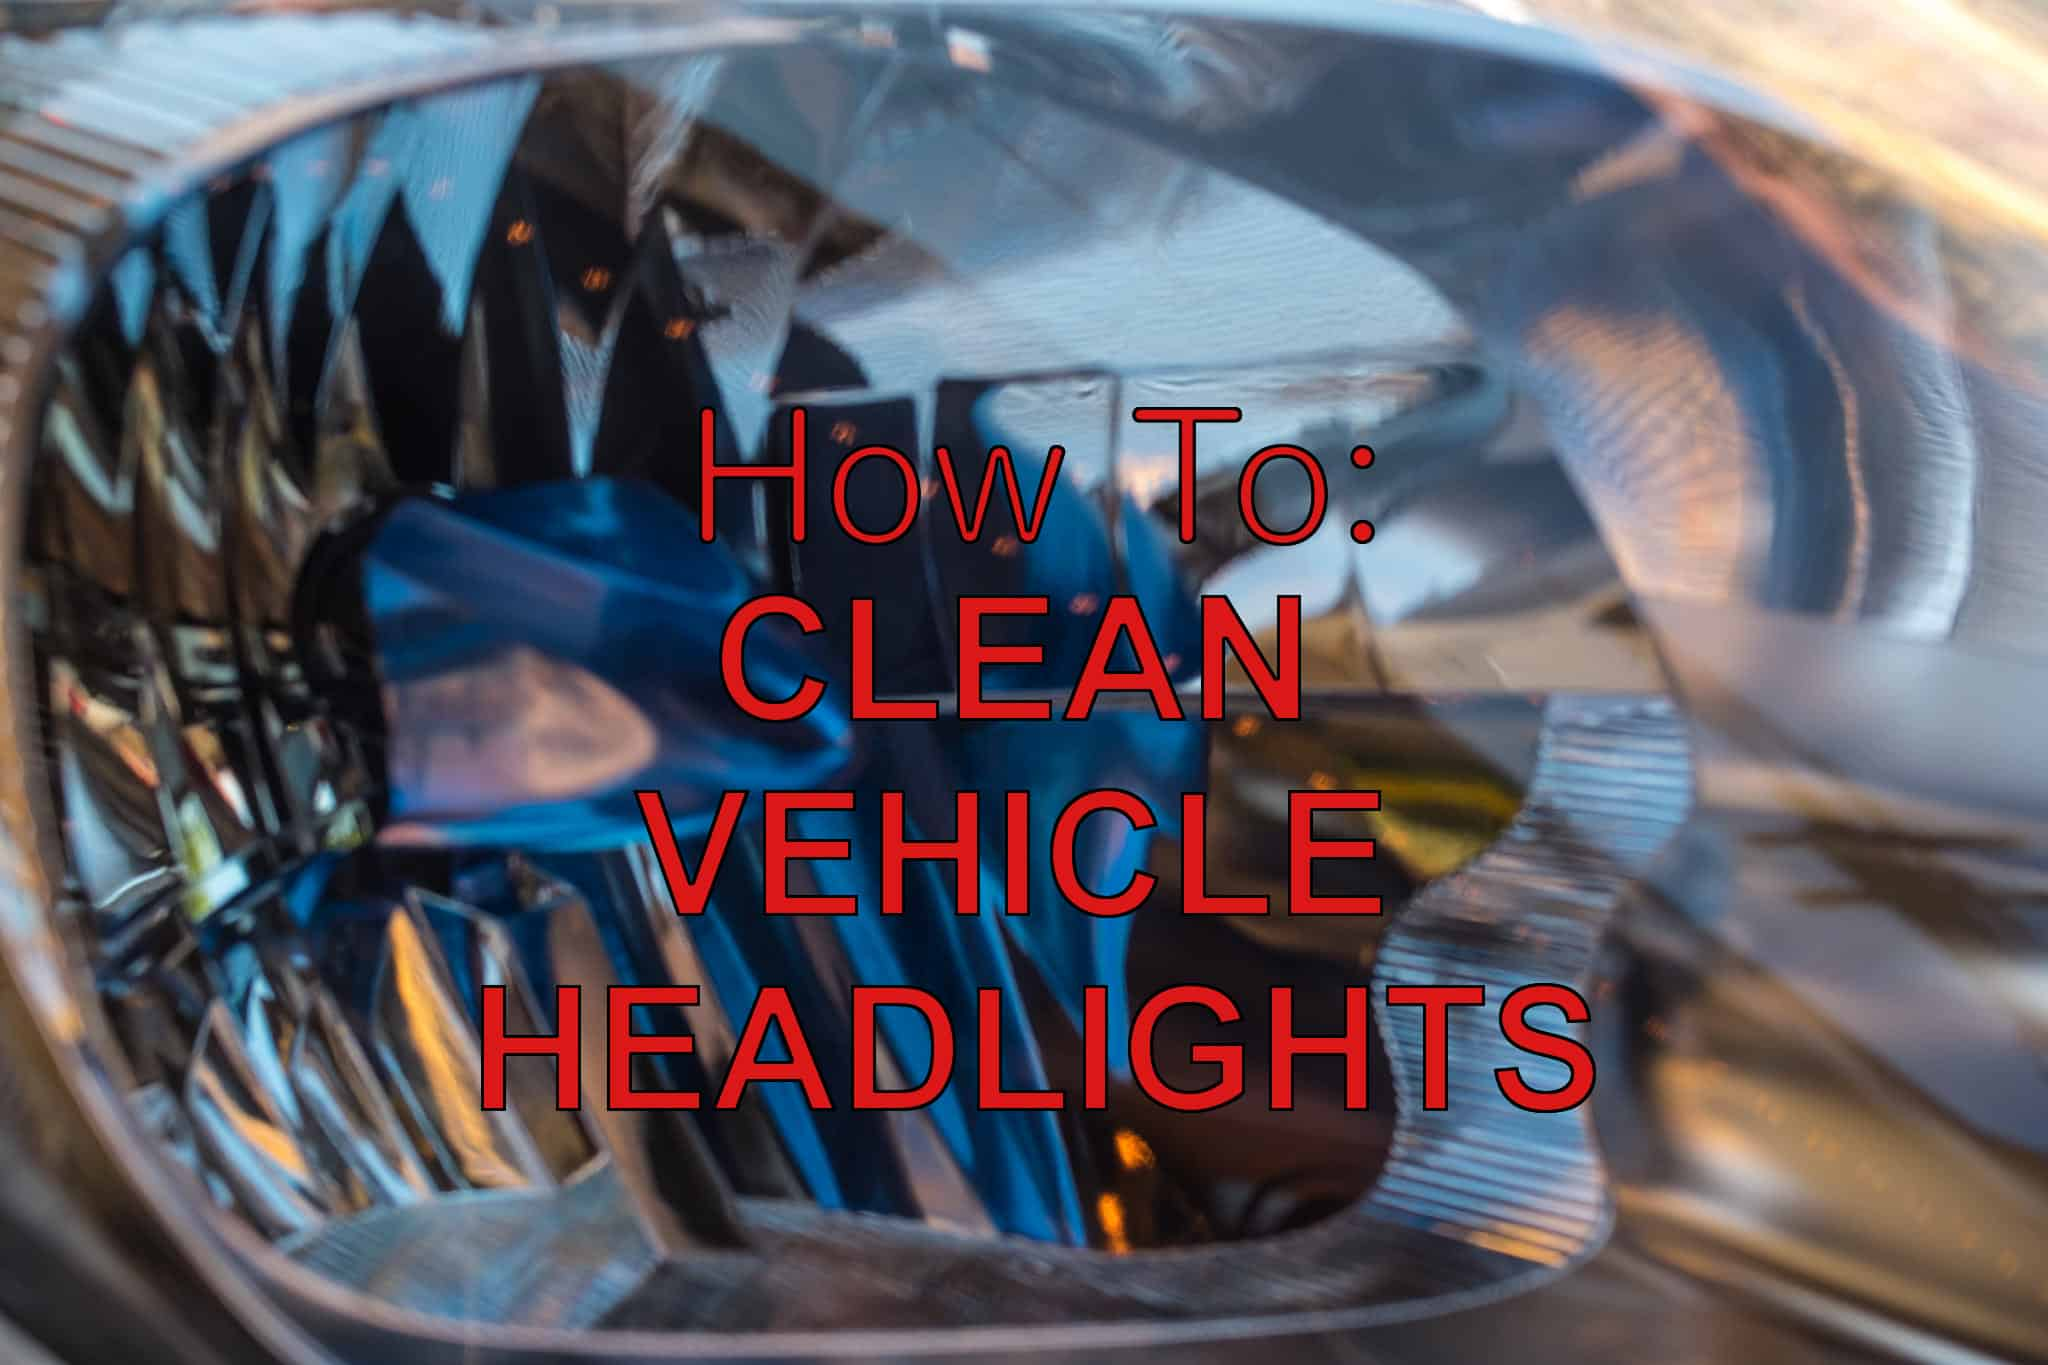 how to clean vehicle headlights